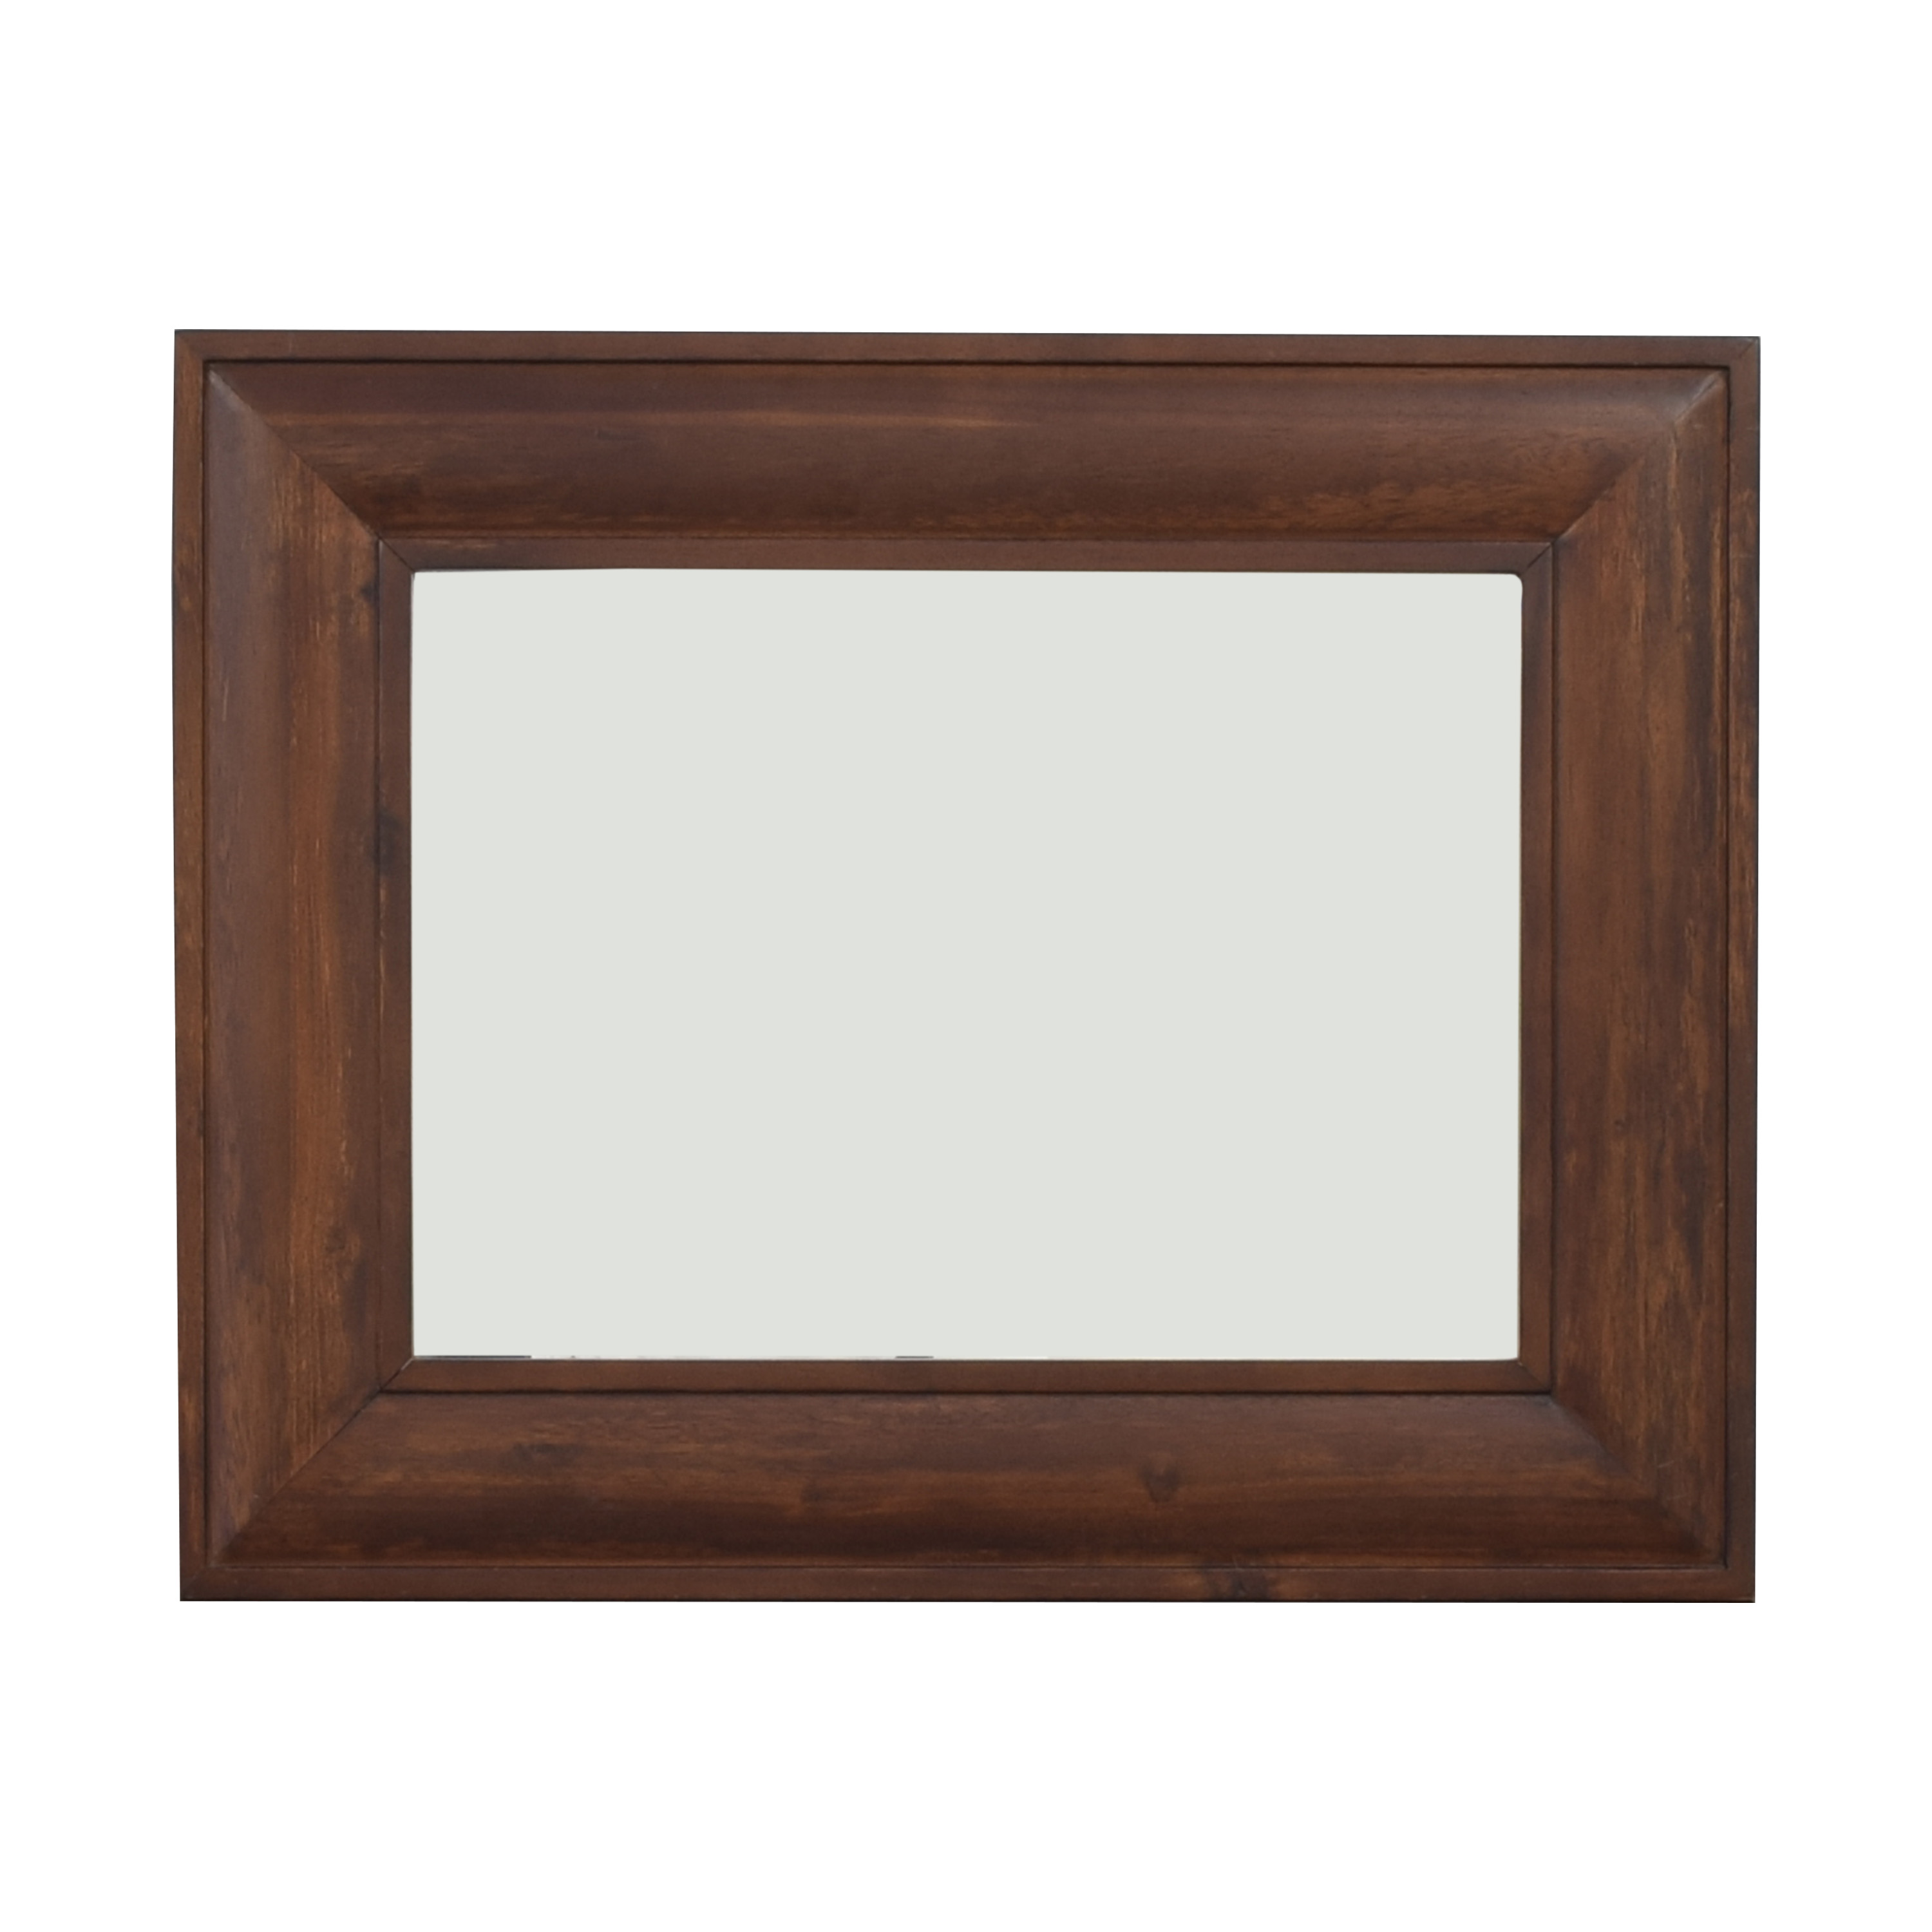 Pottery Barn Framed Wall Mirror sale